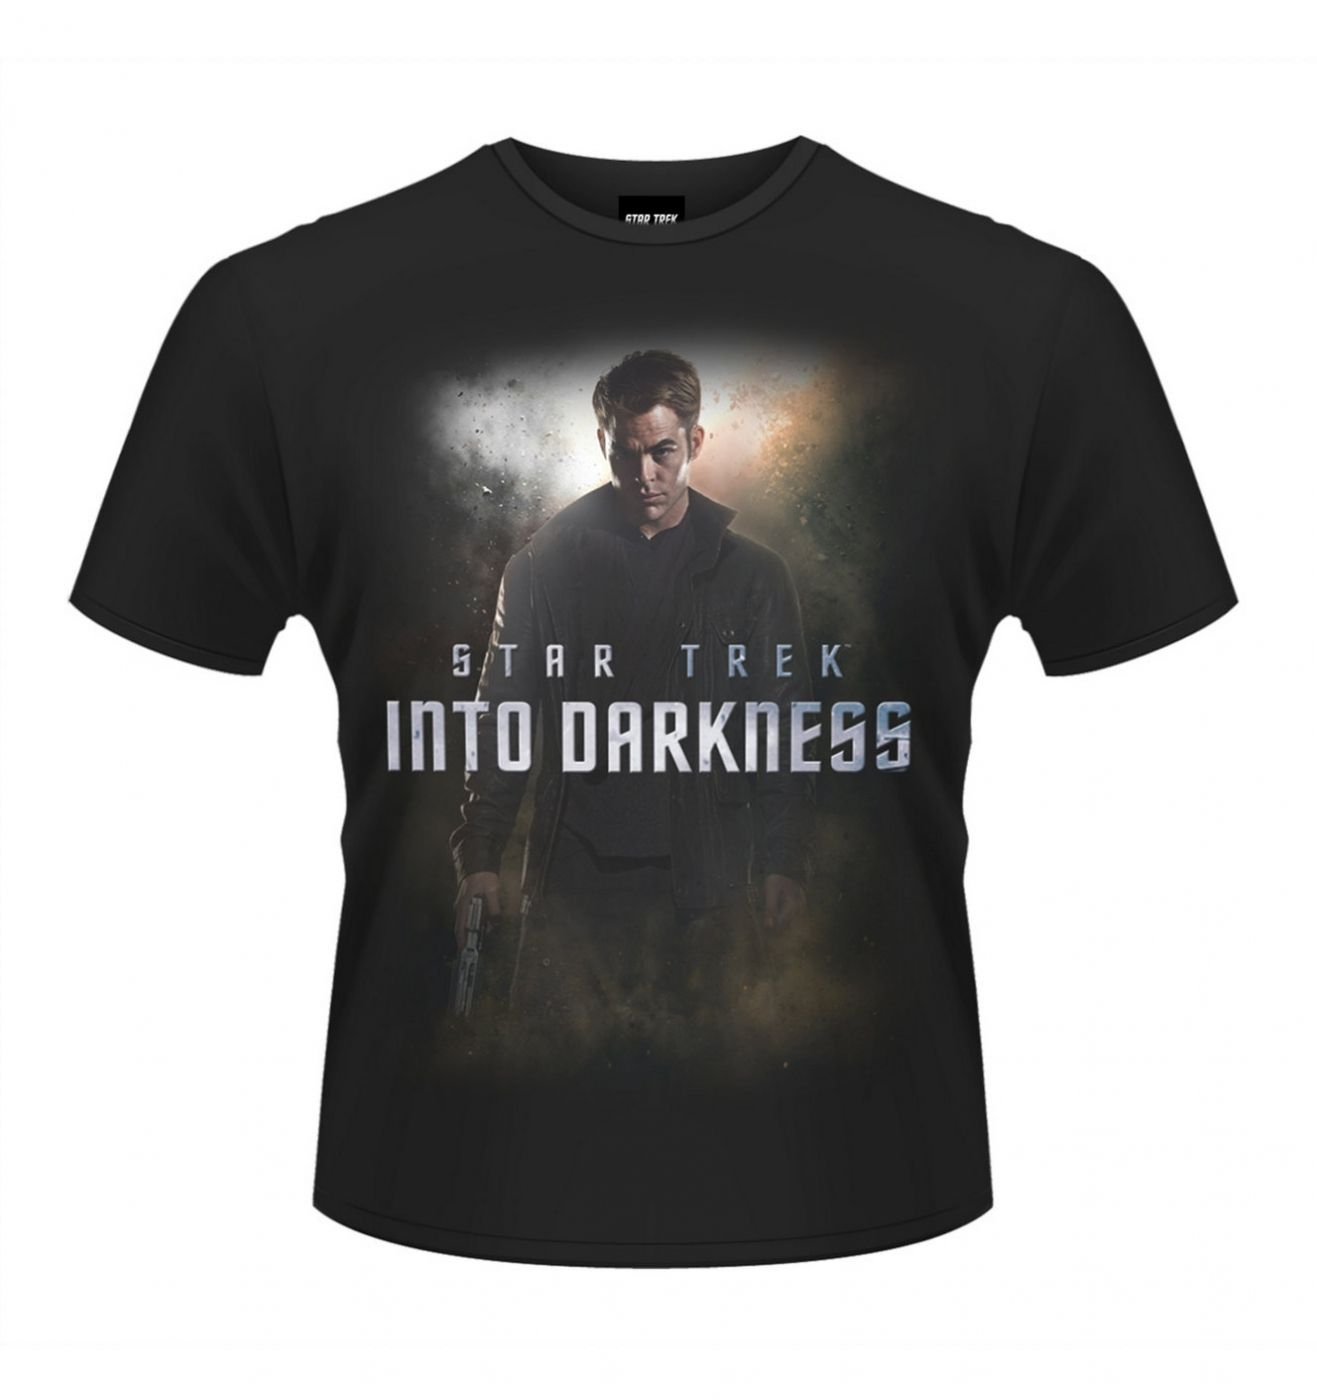 OFFICIAL Star Trek Into Darkness Kirk men's t-shirt